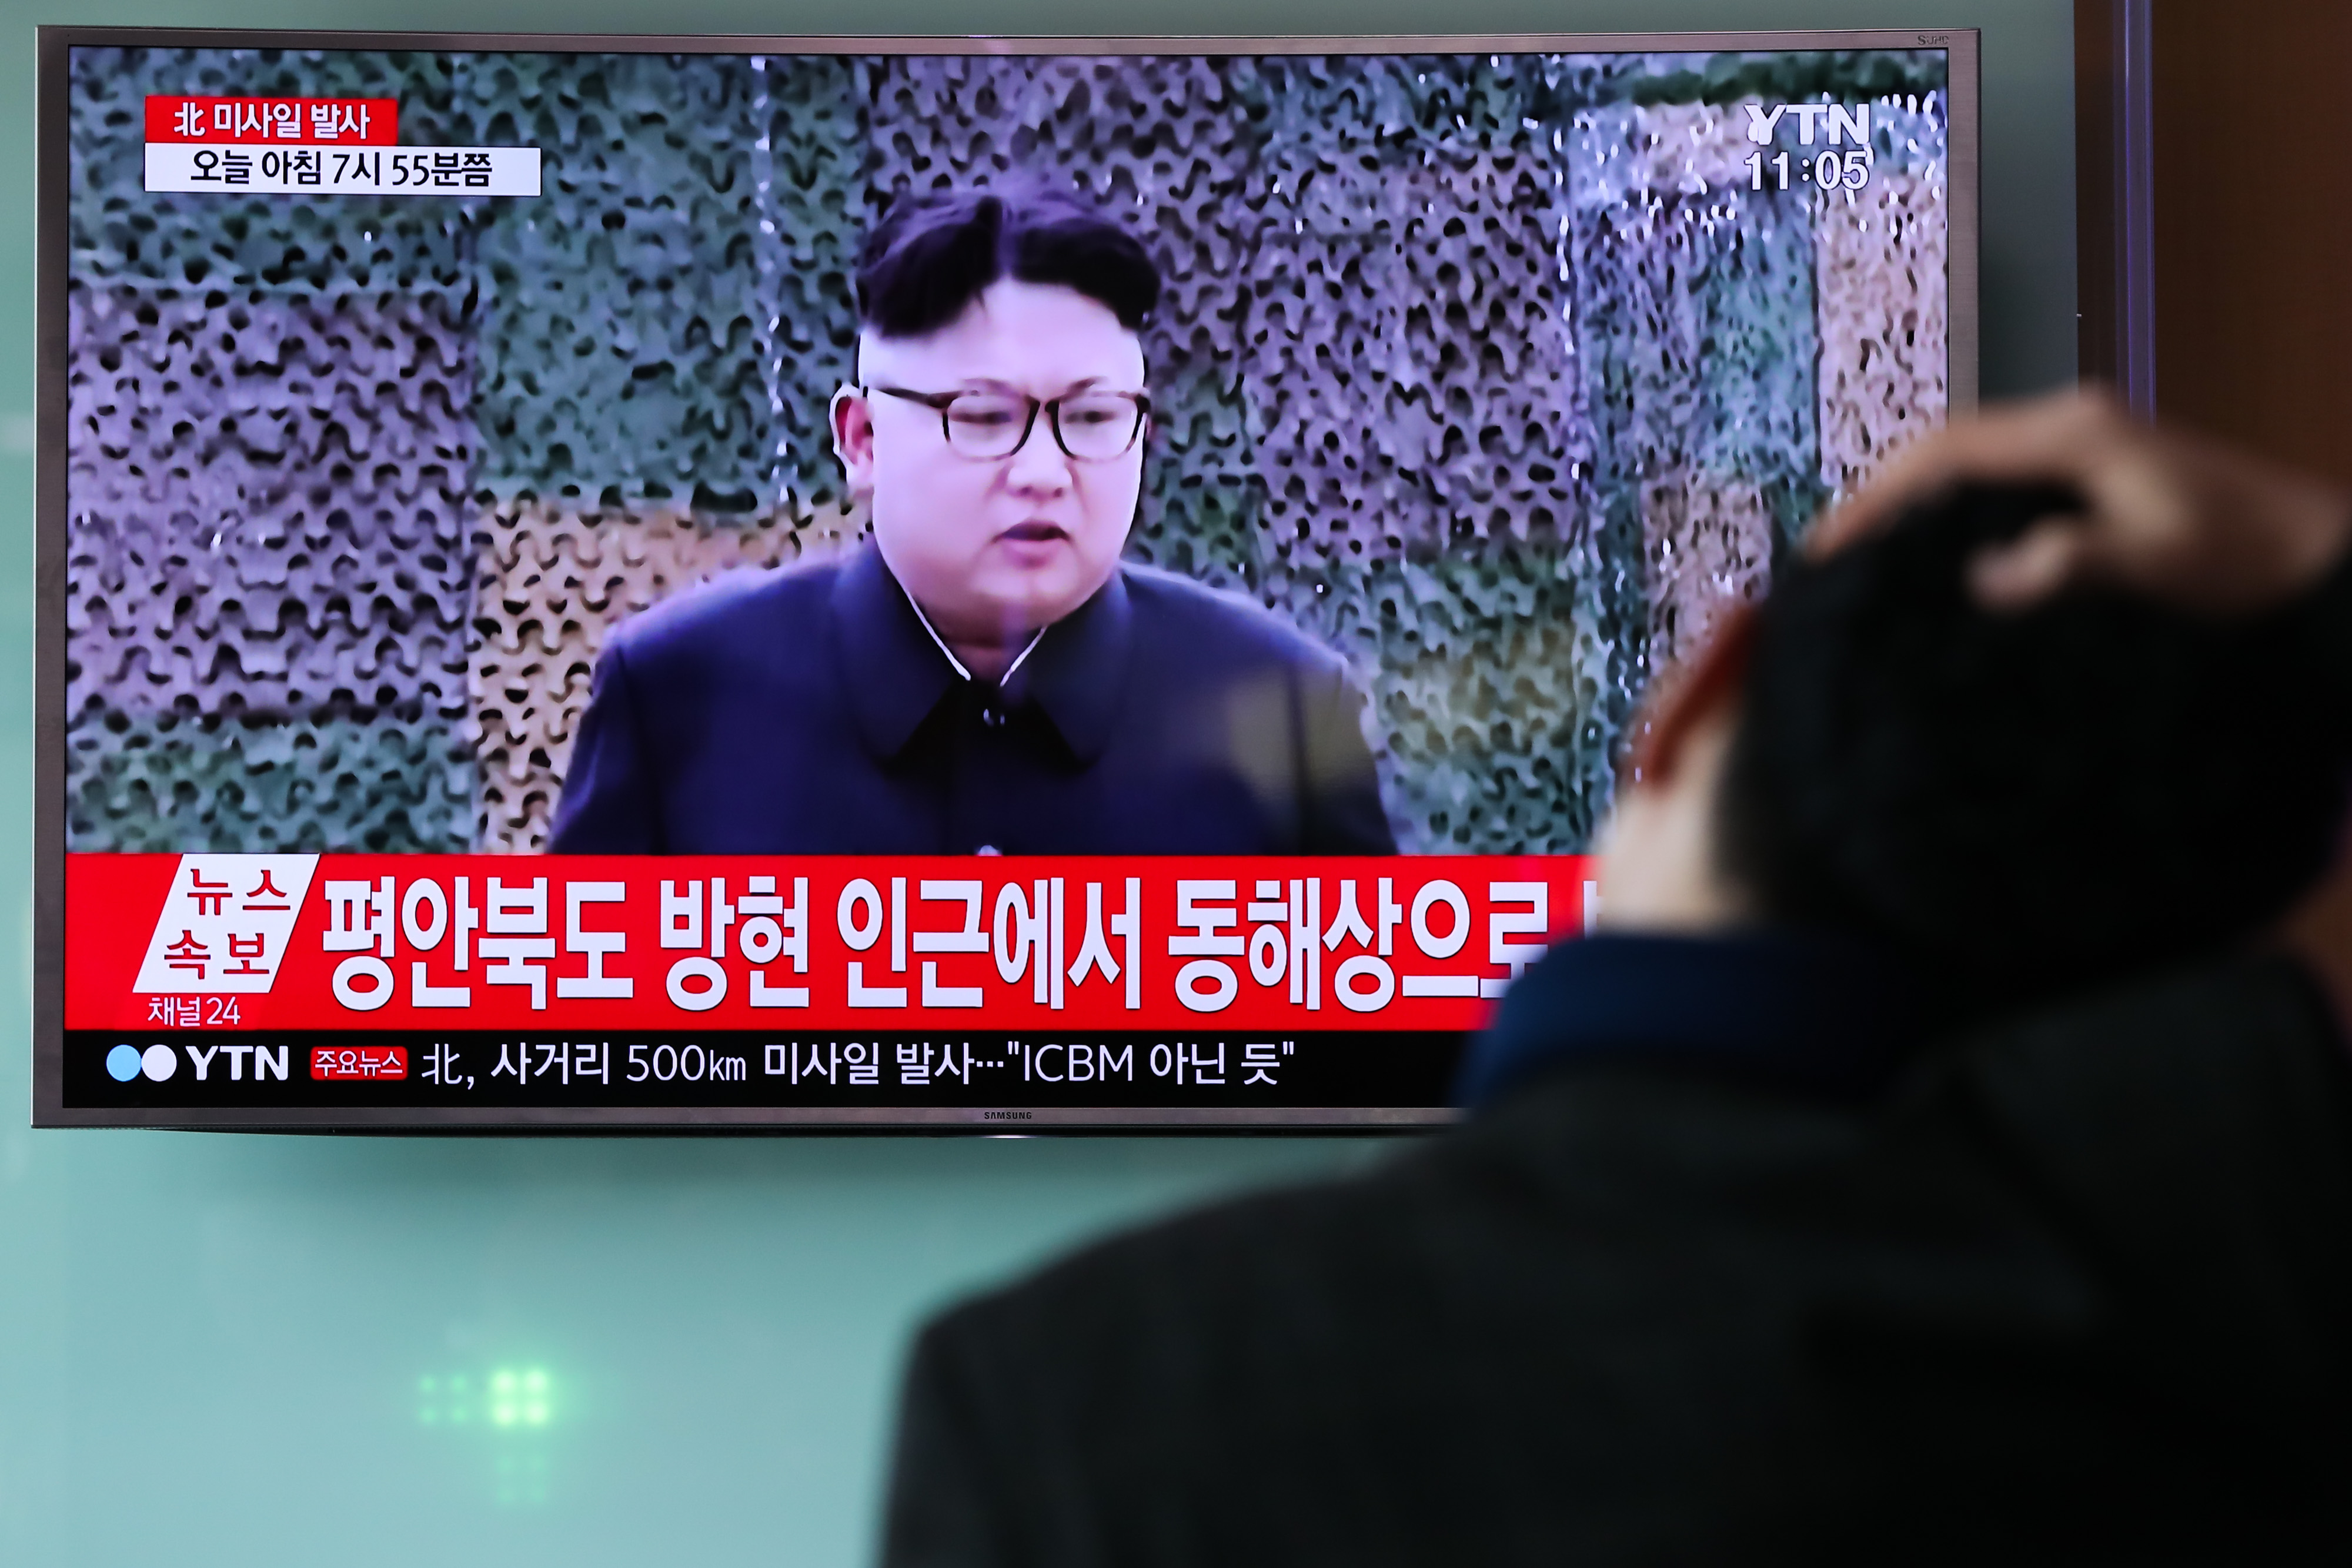 An image of Kim Jong Un, leader of North Korea during a news broadcast on North Korea's unidentified ballistic missile launch at Seoul Station in Seoul, South Korea, on Feb. 12, 2017.